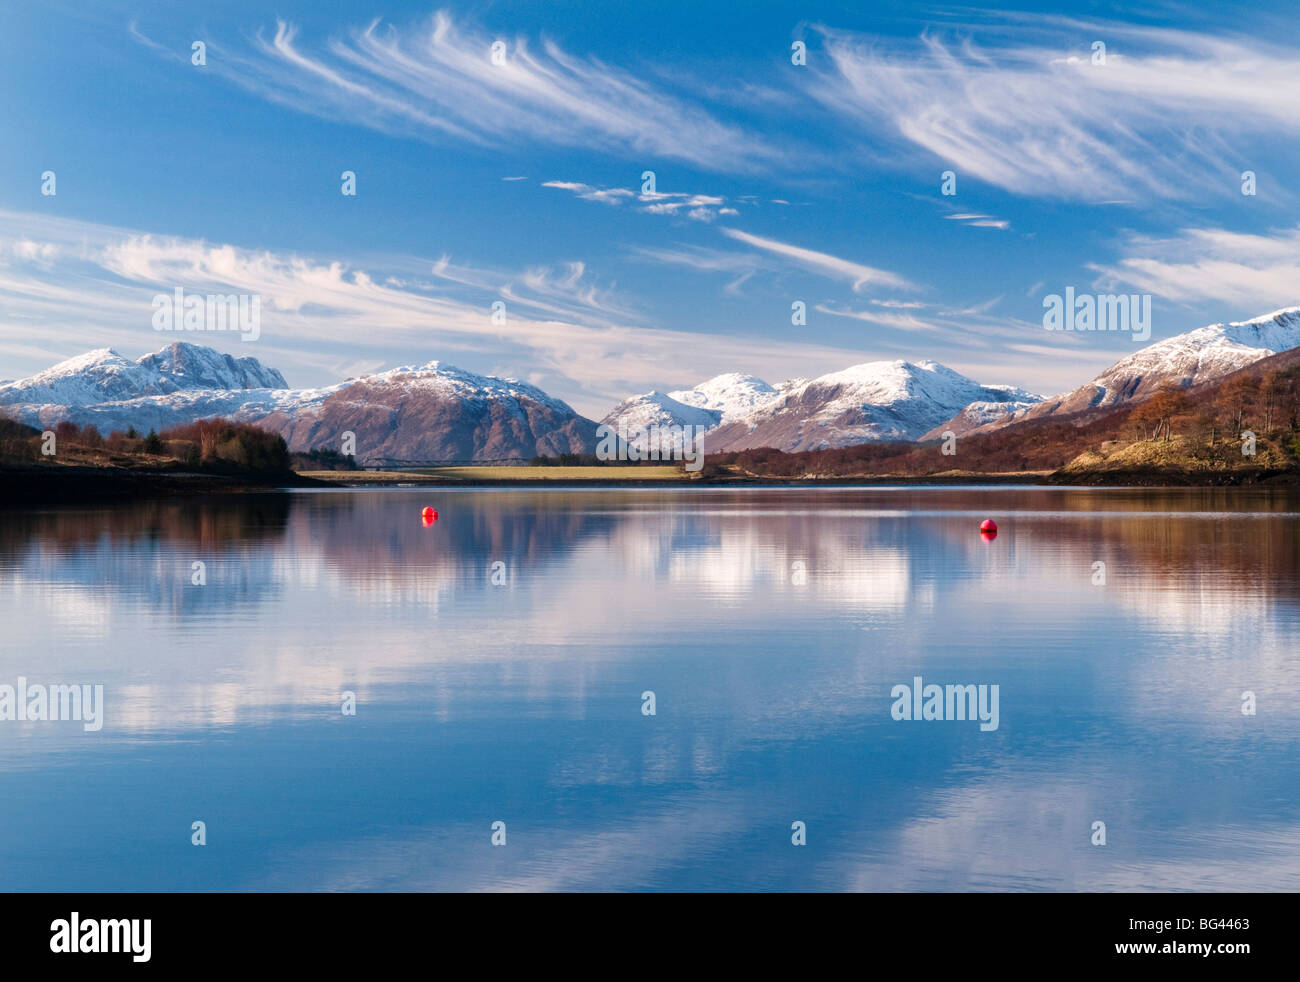 Reflections in Loch Leven, Glencoe, Scotland, UK - Stock Image